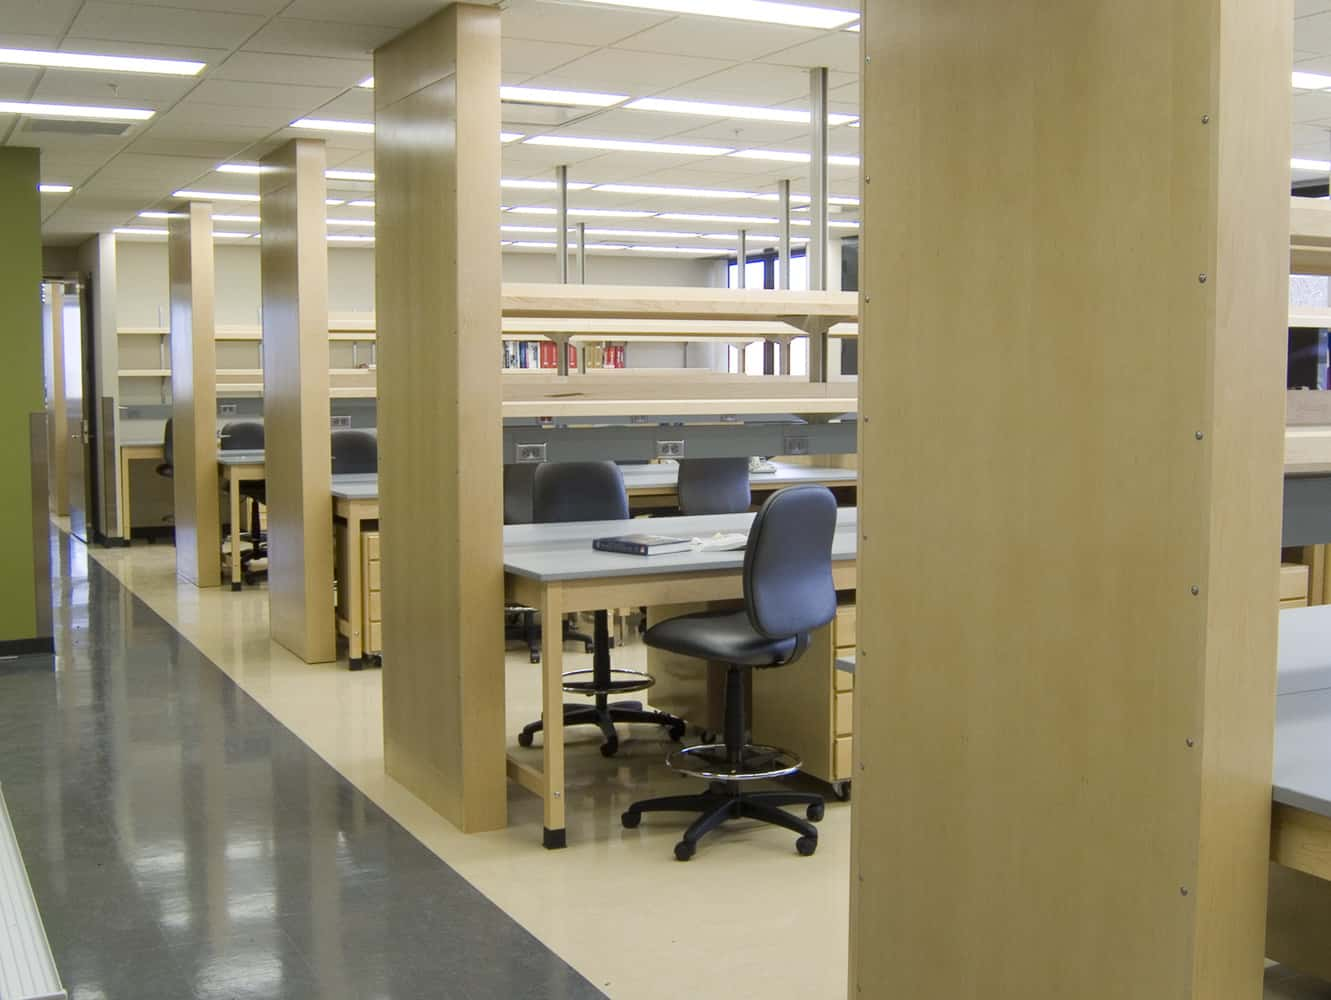 UNIVERSITY OF MINNESOTA - MEDICAL SCHOOL DEPARTMENT OF SURGERY MOOS TOWER SURGICAL RESEARCH AND CANCER LABORATORIES